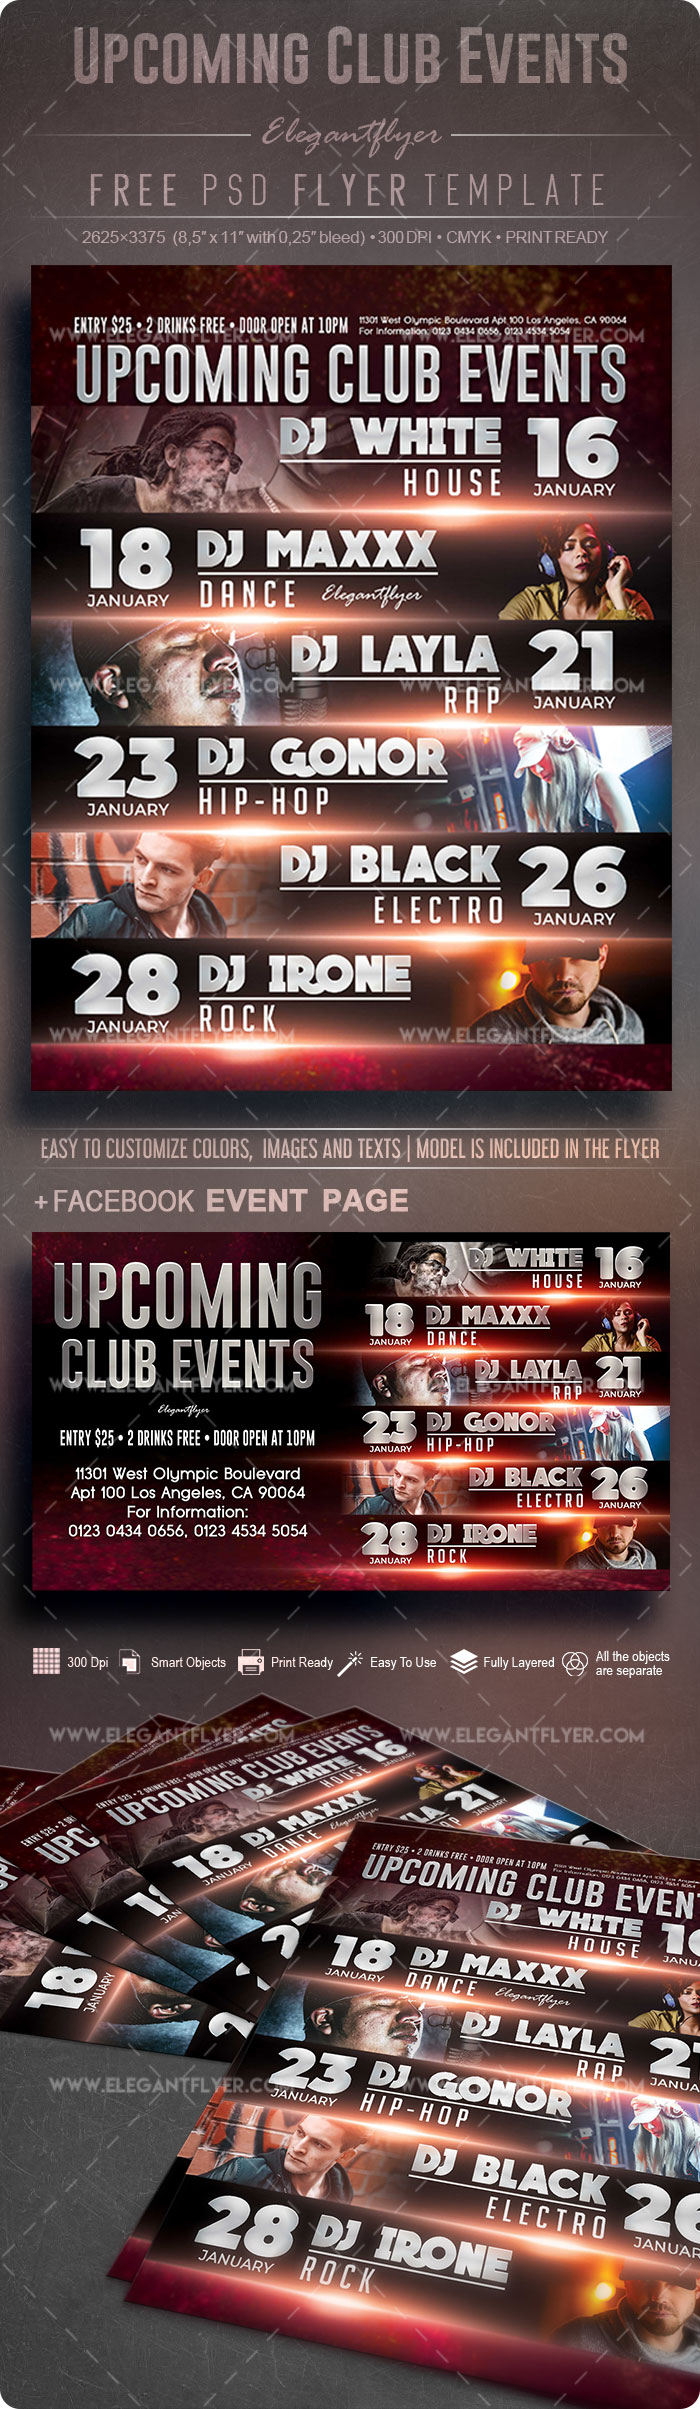 Upcoming Club Events – Free Flyer PSD Template